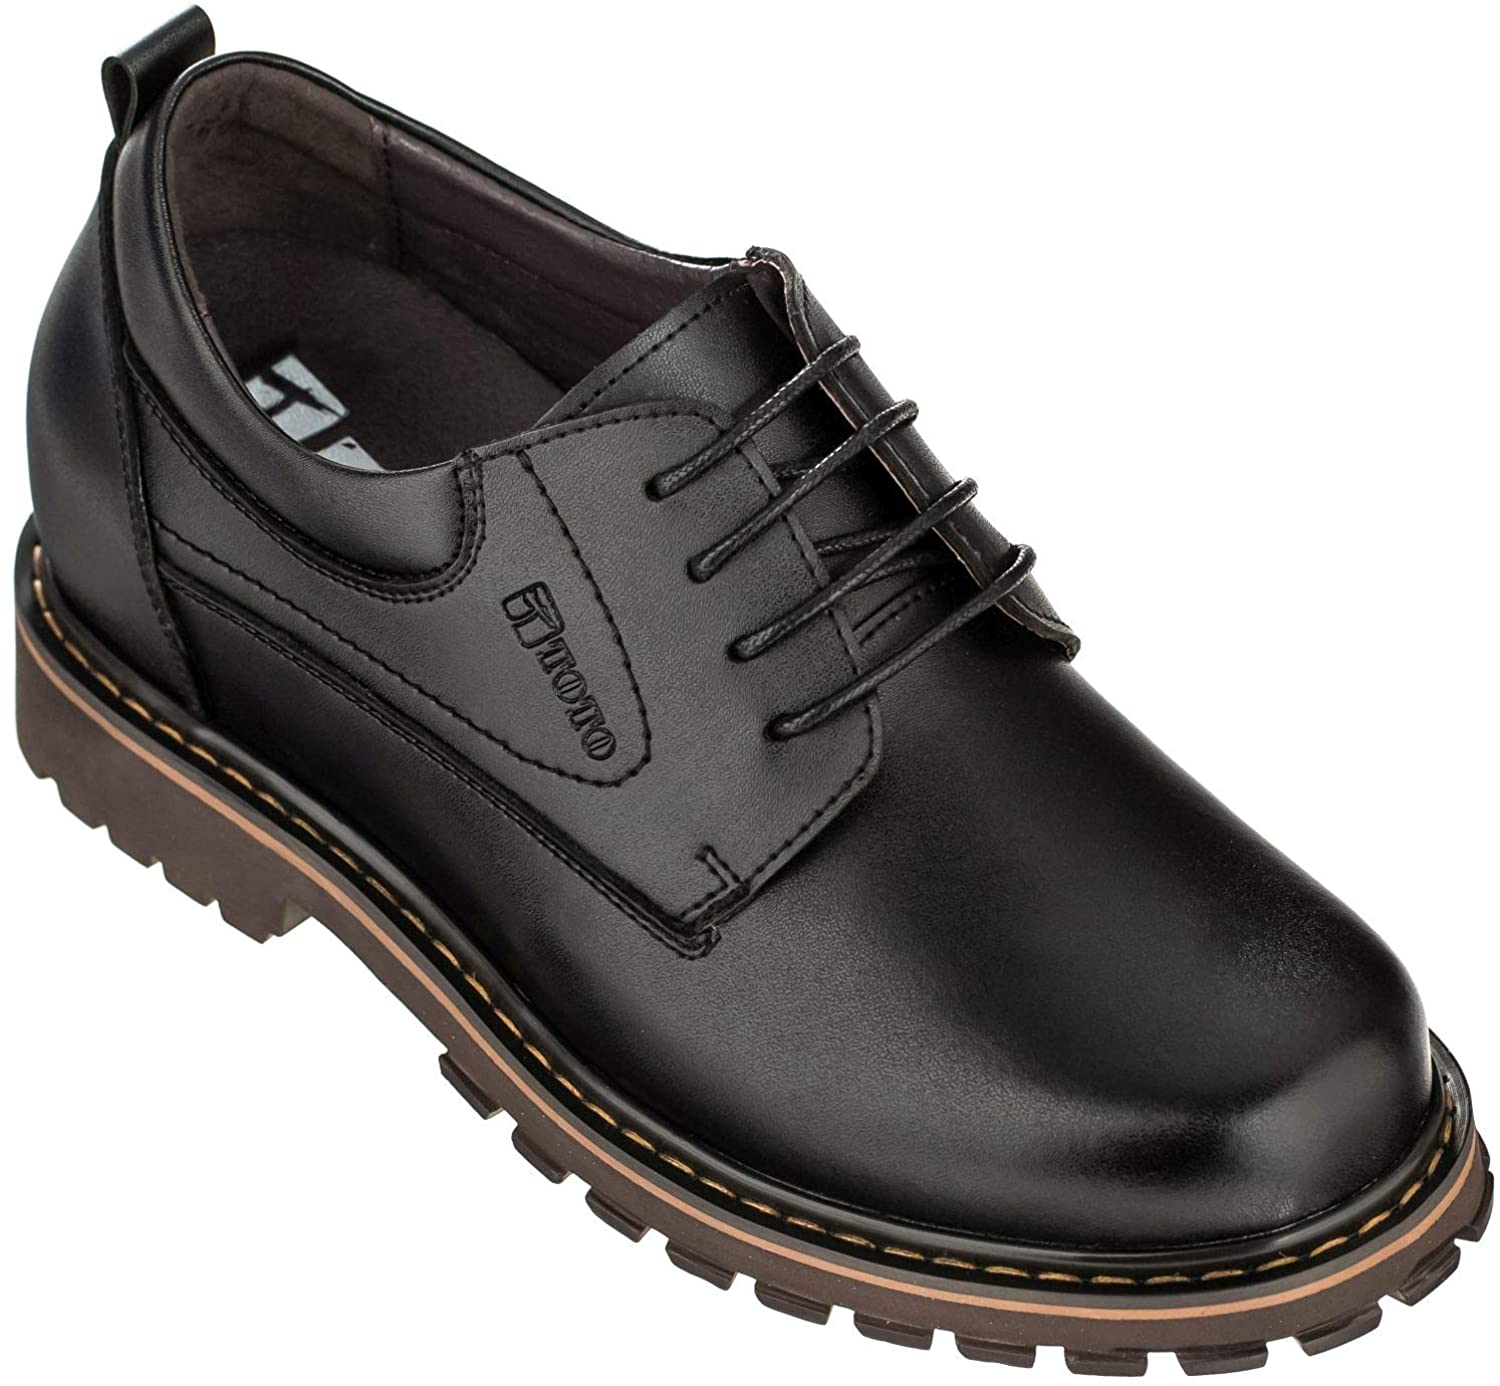 TOTO Men's Invisible Height Increasing Elevator Shoes - Black Leather Lace-up Round-Toe Casual - 3 Inches Taller - F70289